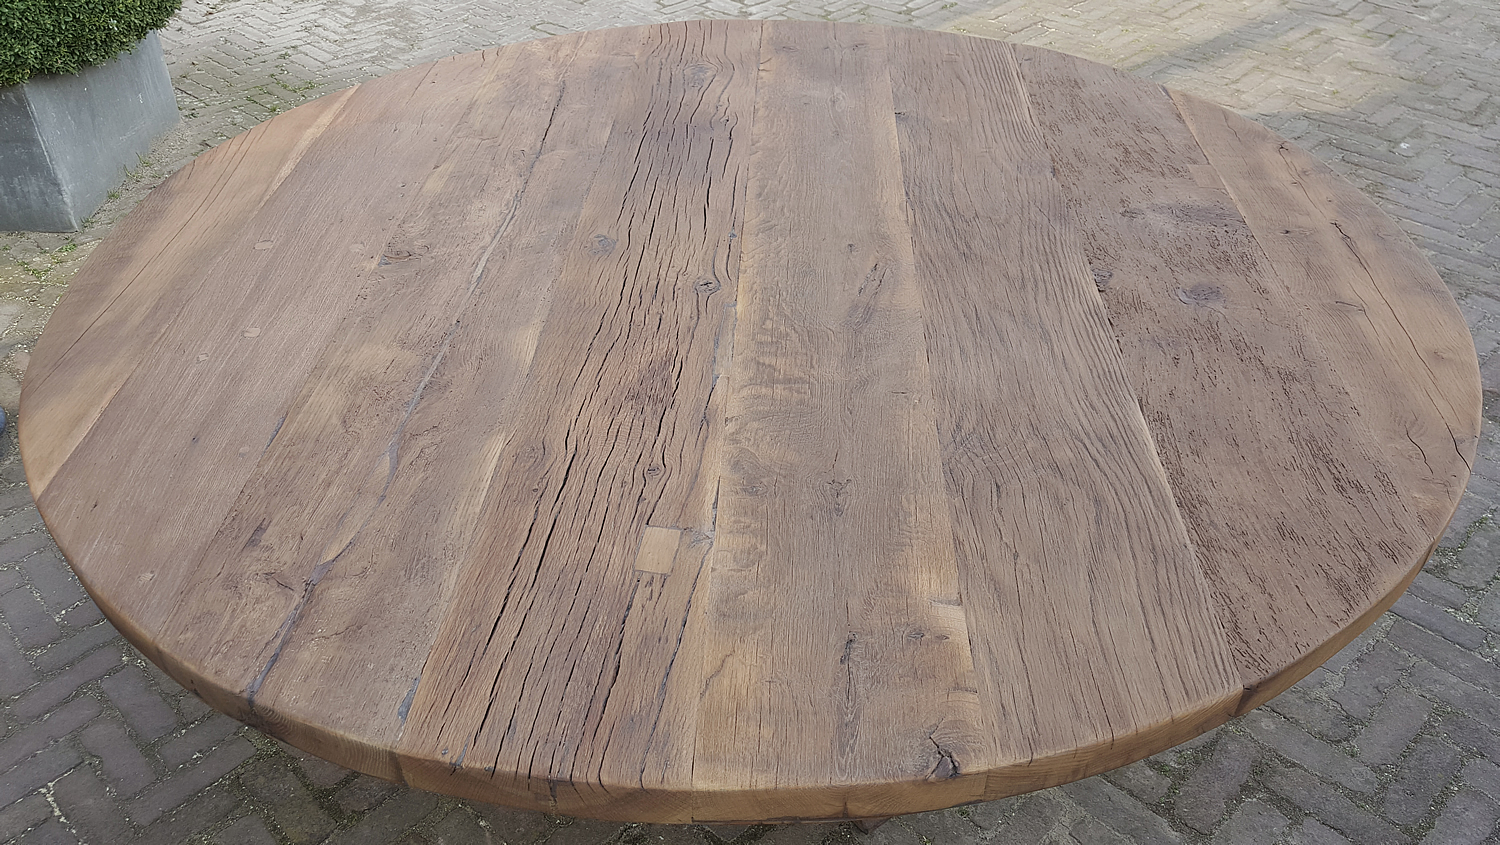 Wohnzimmertische Oval Round Refectory Table Made Of 4,5 - 5 Cm Sunburned Reclaimed Oak - Dt69